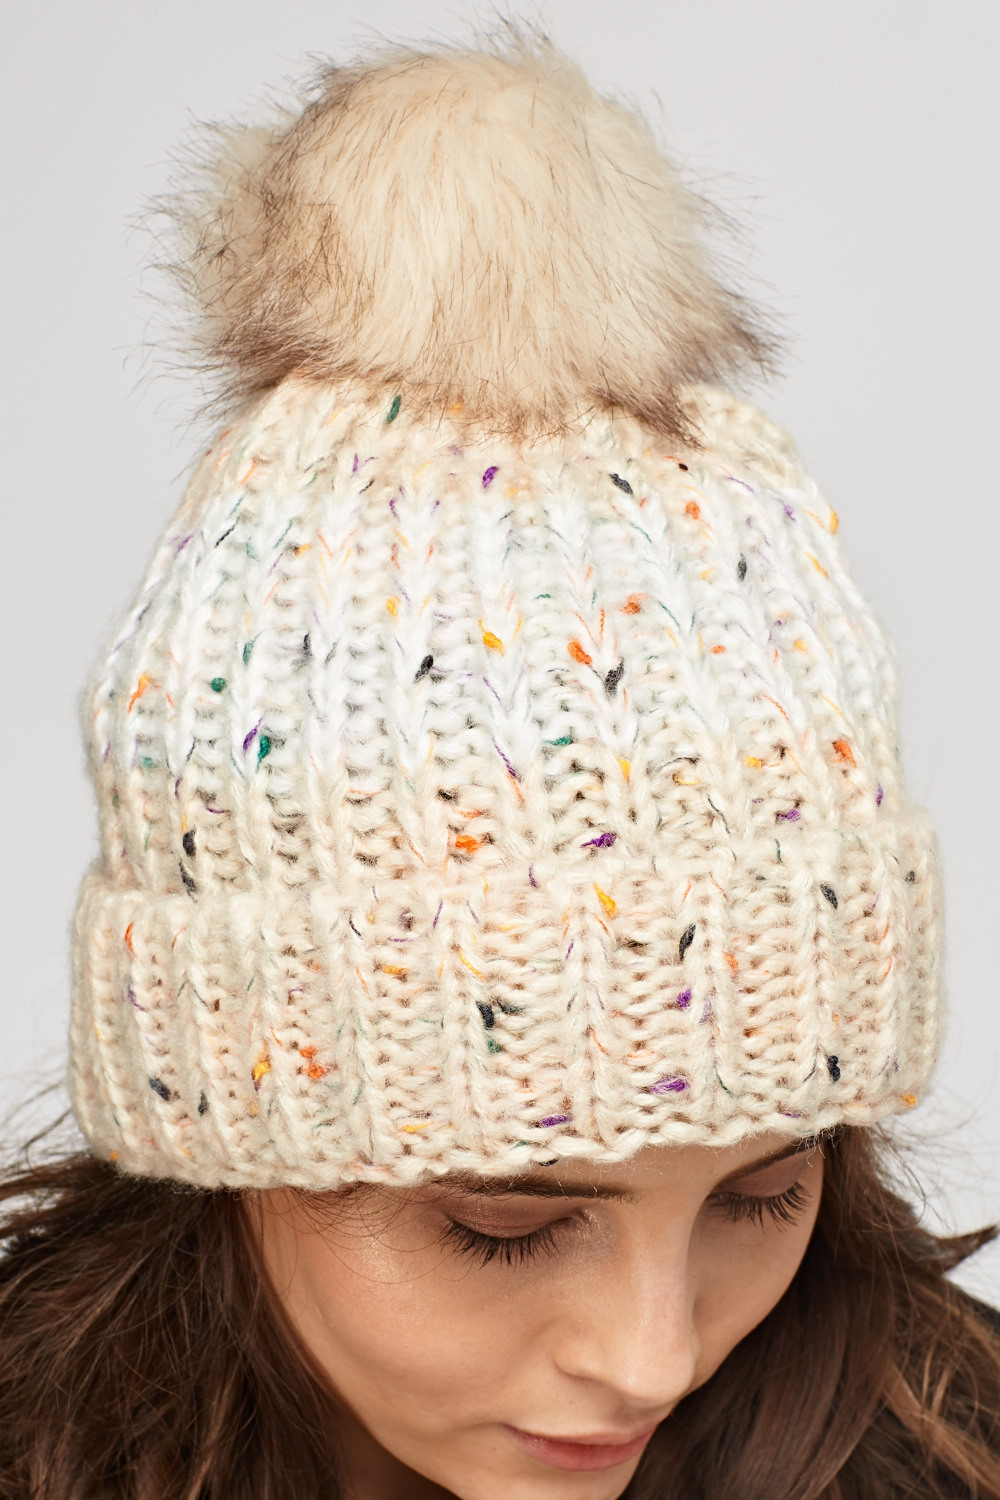 70f775e7a5d Speckled Knitted Pom Beanie Hat - Just £5